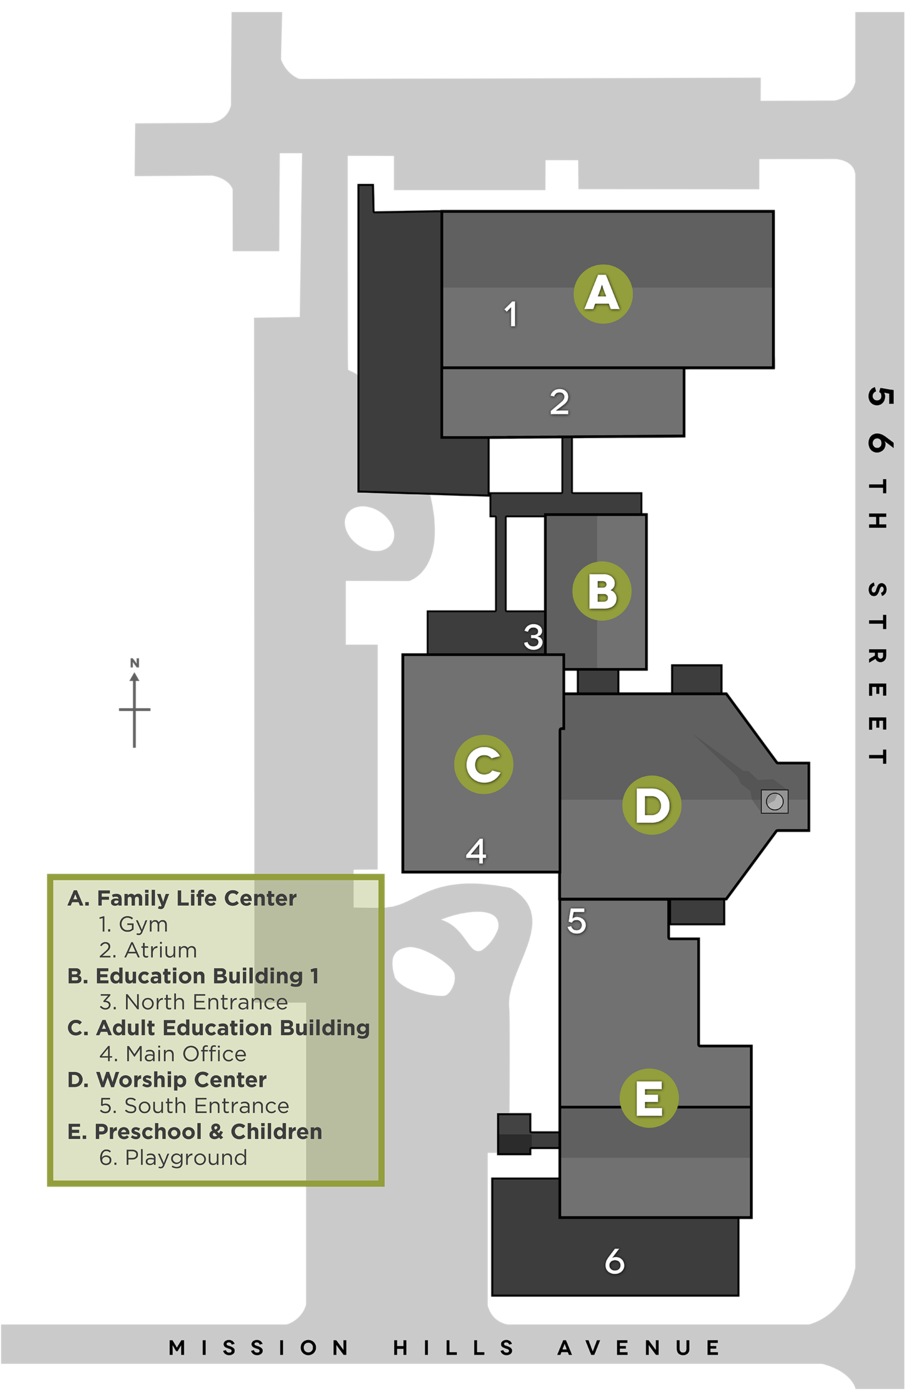 Playground in floor plan png. Community groups a downloadable